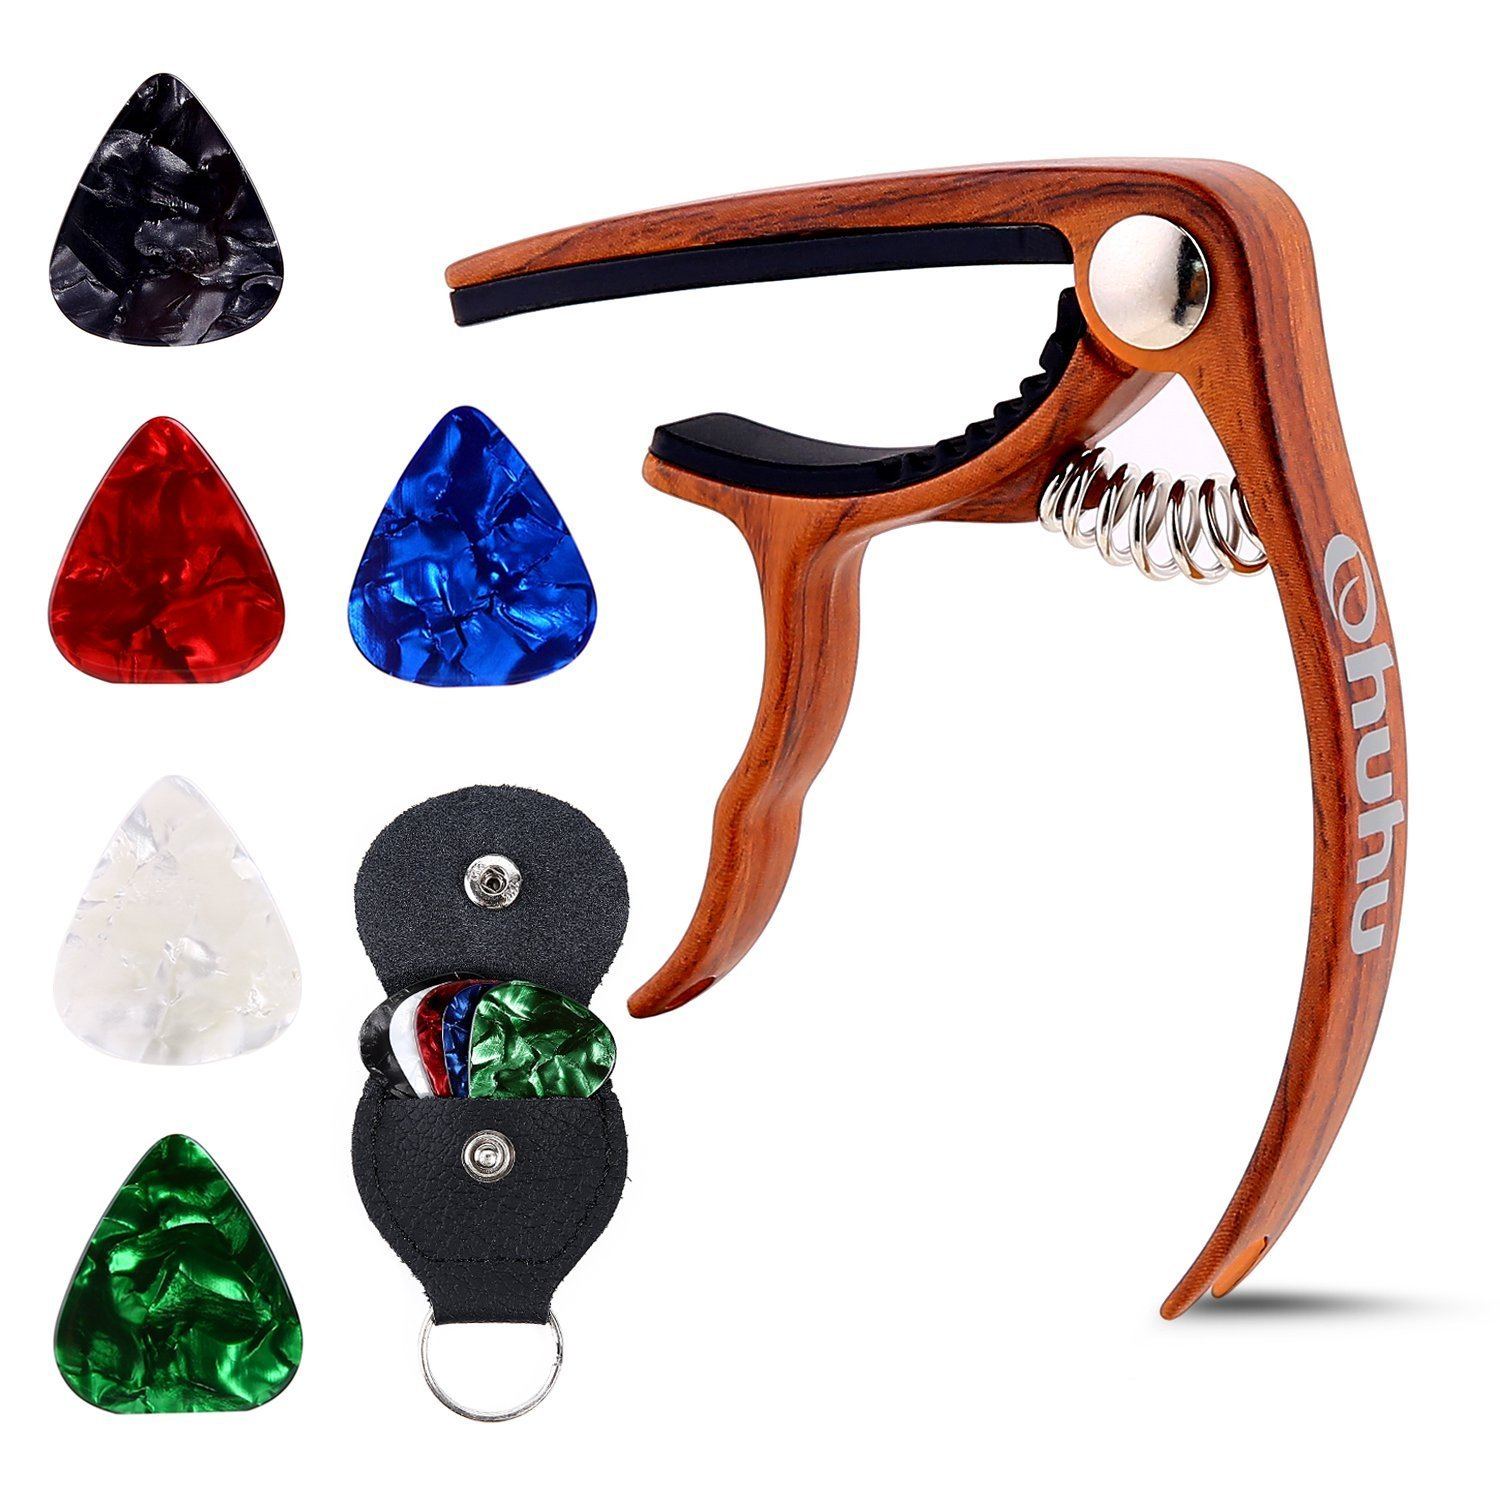 Ohuhu Guitar Capo for Acoustic, Electric Guitars, Ukulele, Zinc Alloy- Quick Change Guitar Capo With Free 5 Picks & Pick Holder( RoseWood Color), Acoustic Guitar Accessories Trigger Capo Key Clamp Y32-81000-05